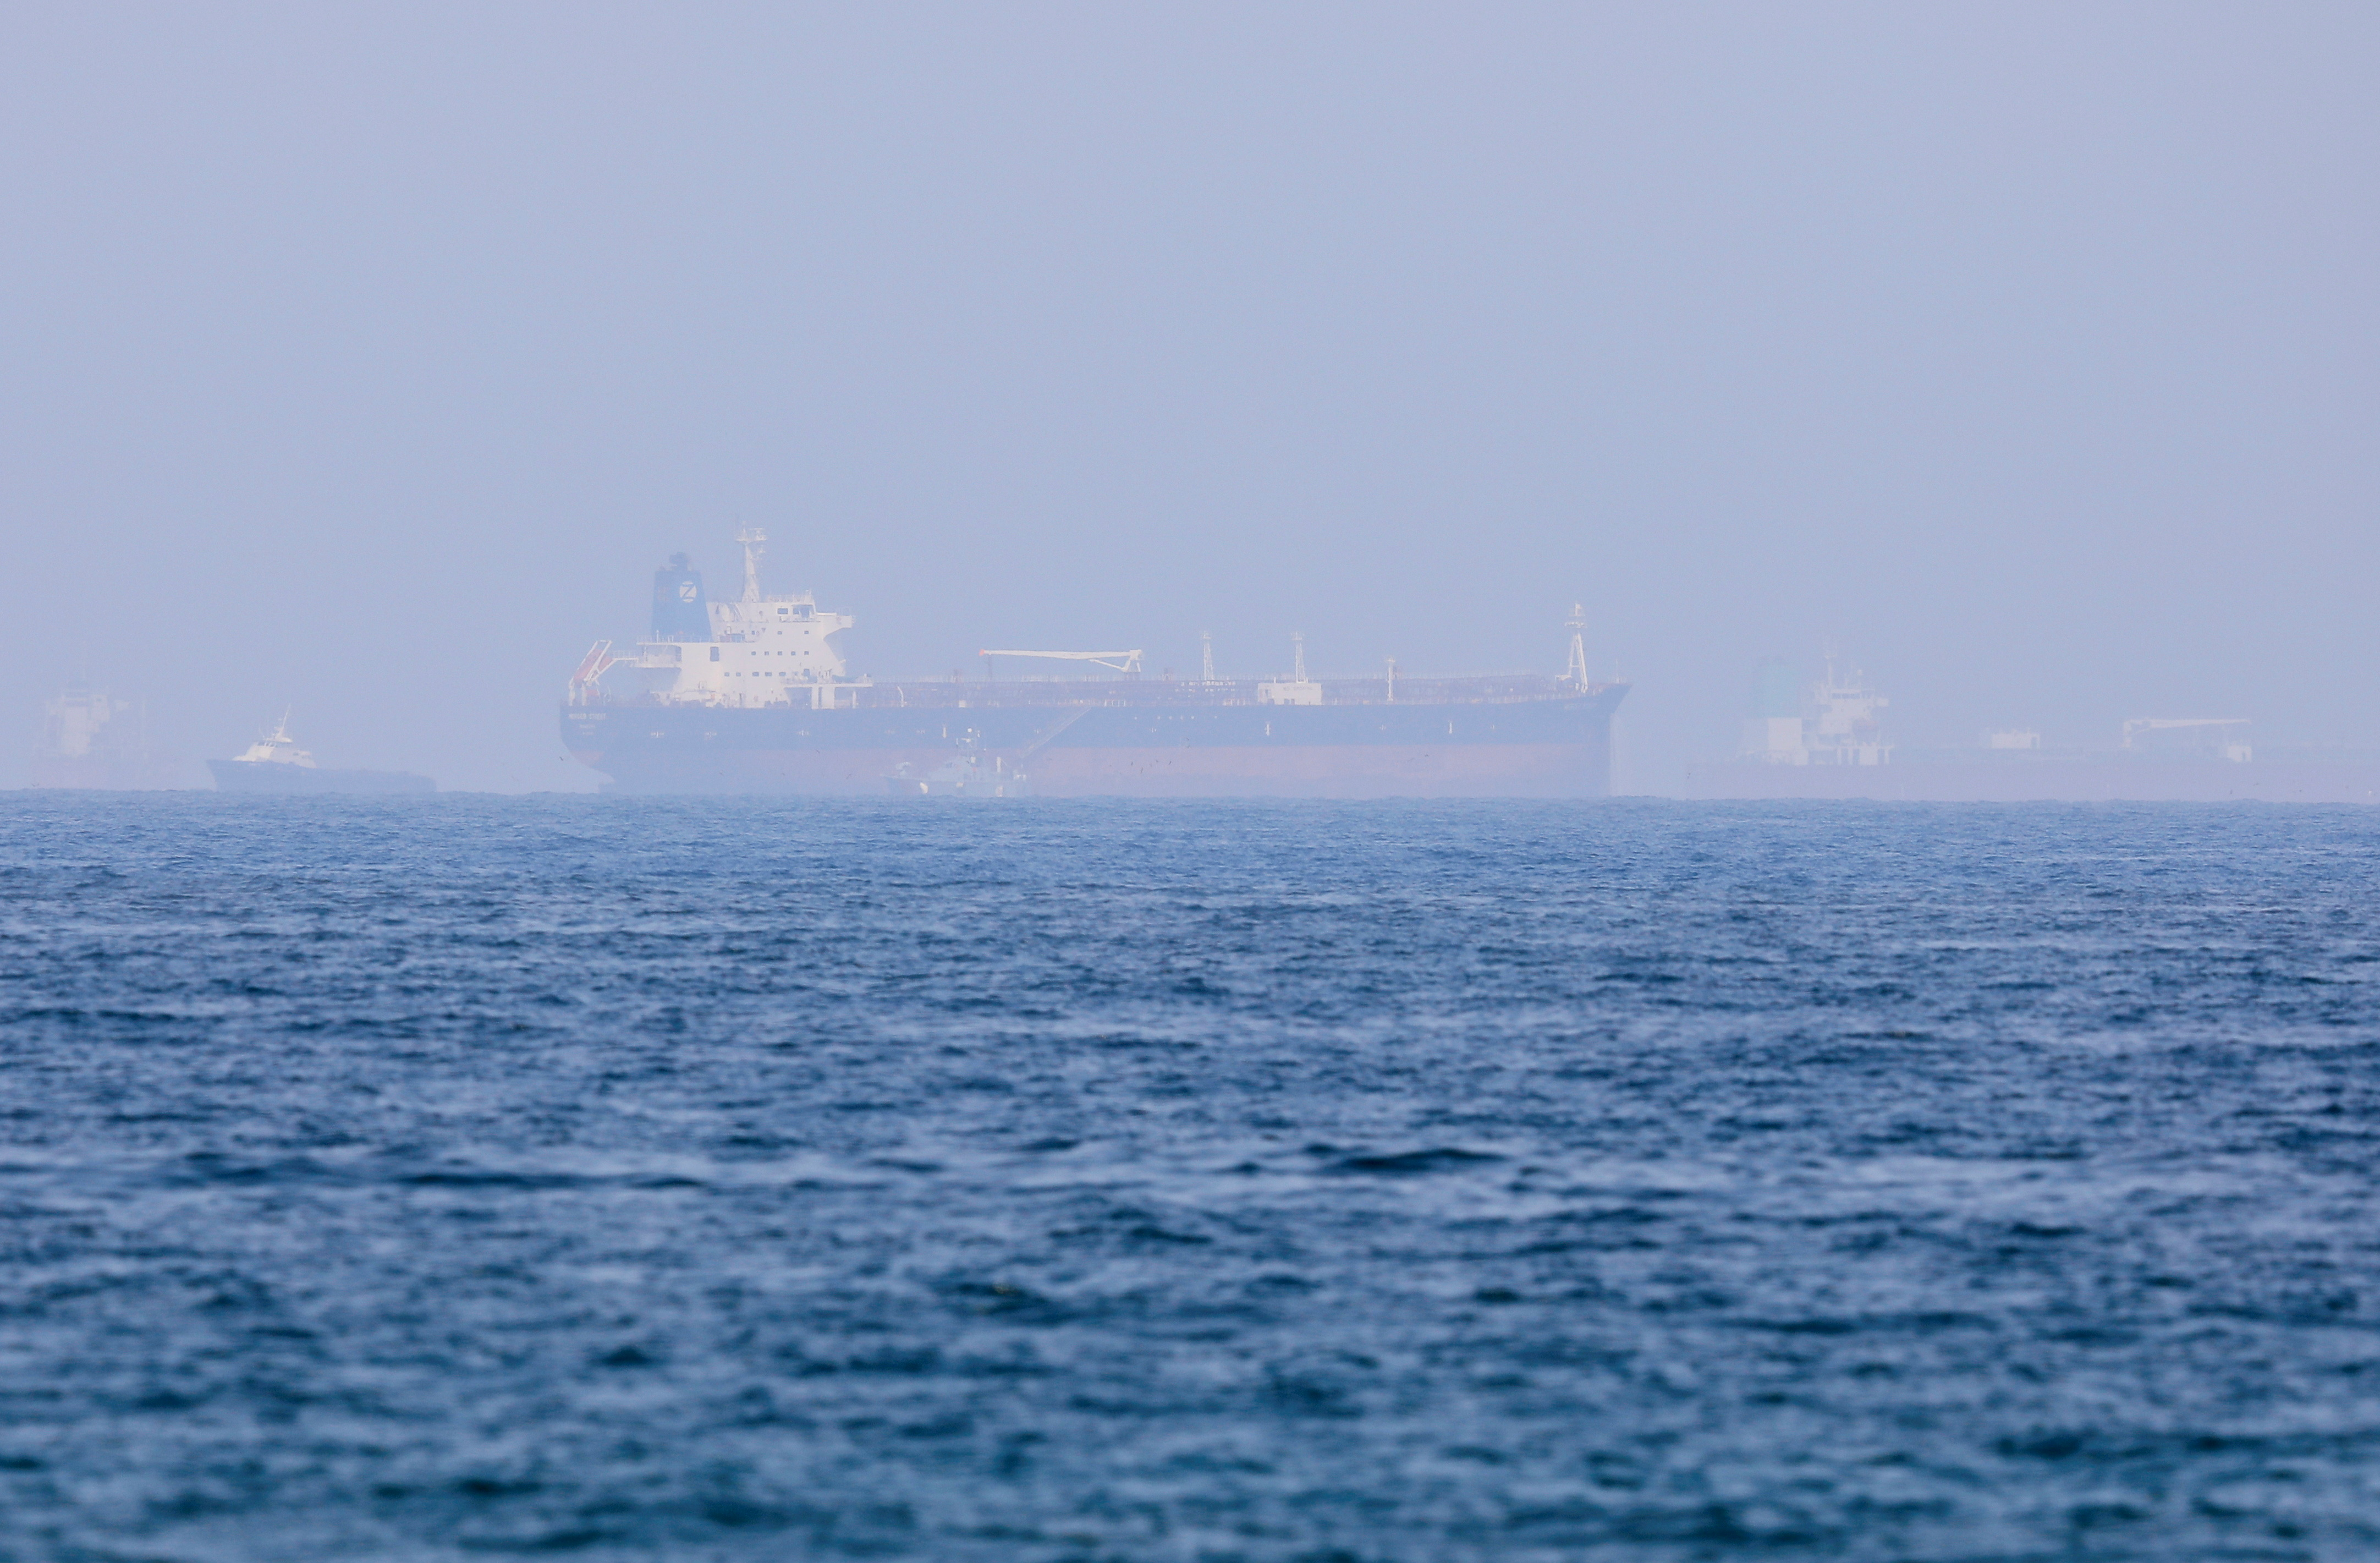 Mercer Street, an Israeli-managed oil tanker that was attacked last week is seen off Fujairah Port in United Arab Emirates, August 3, 2021. REUTERS/Rula Rouhana